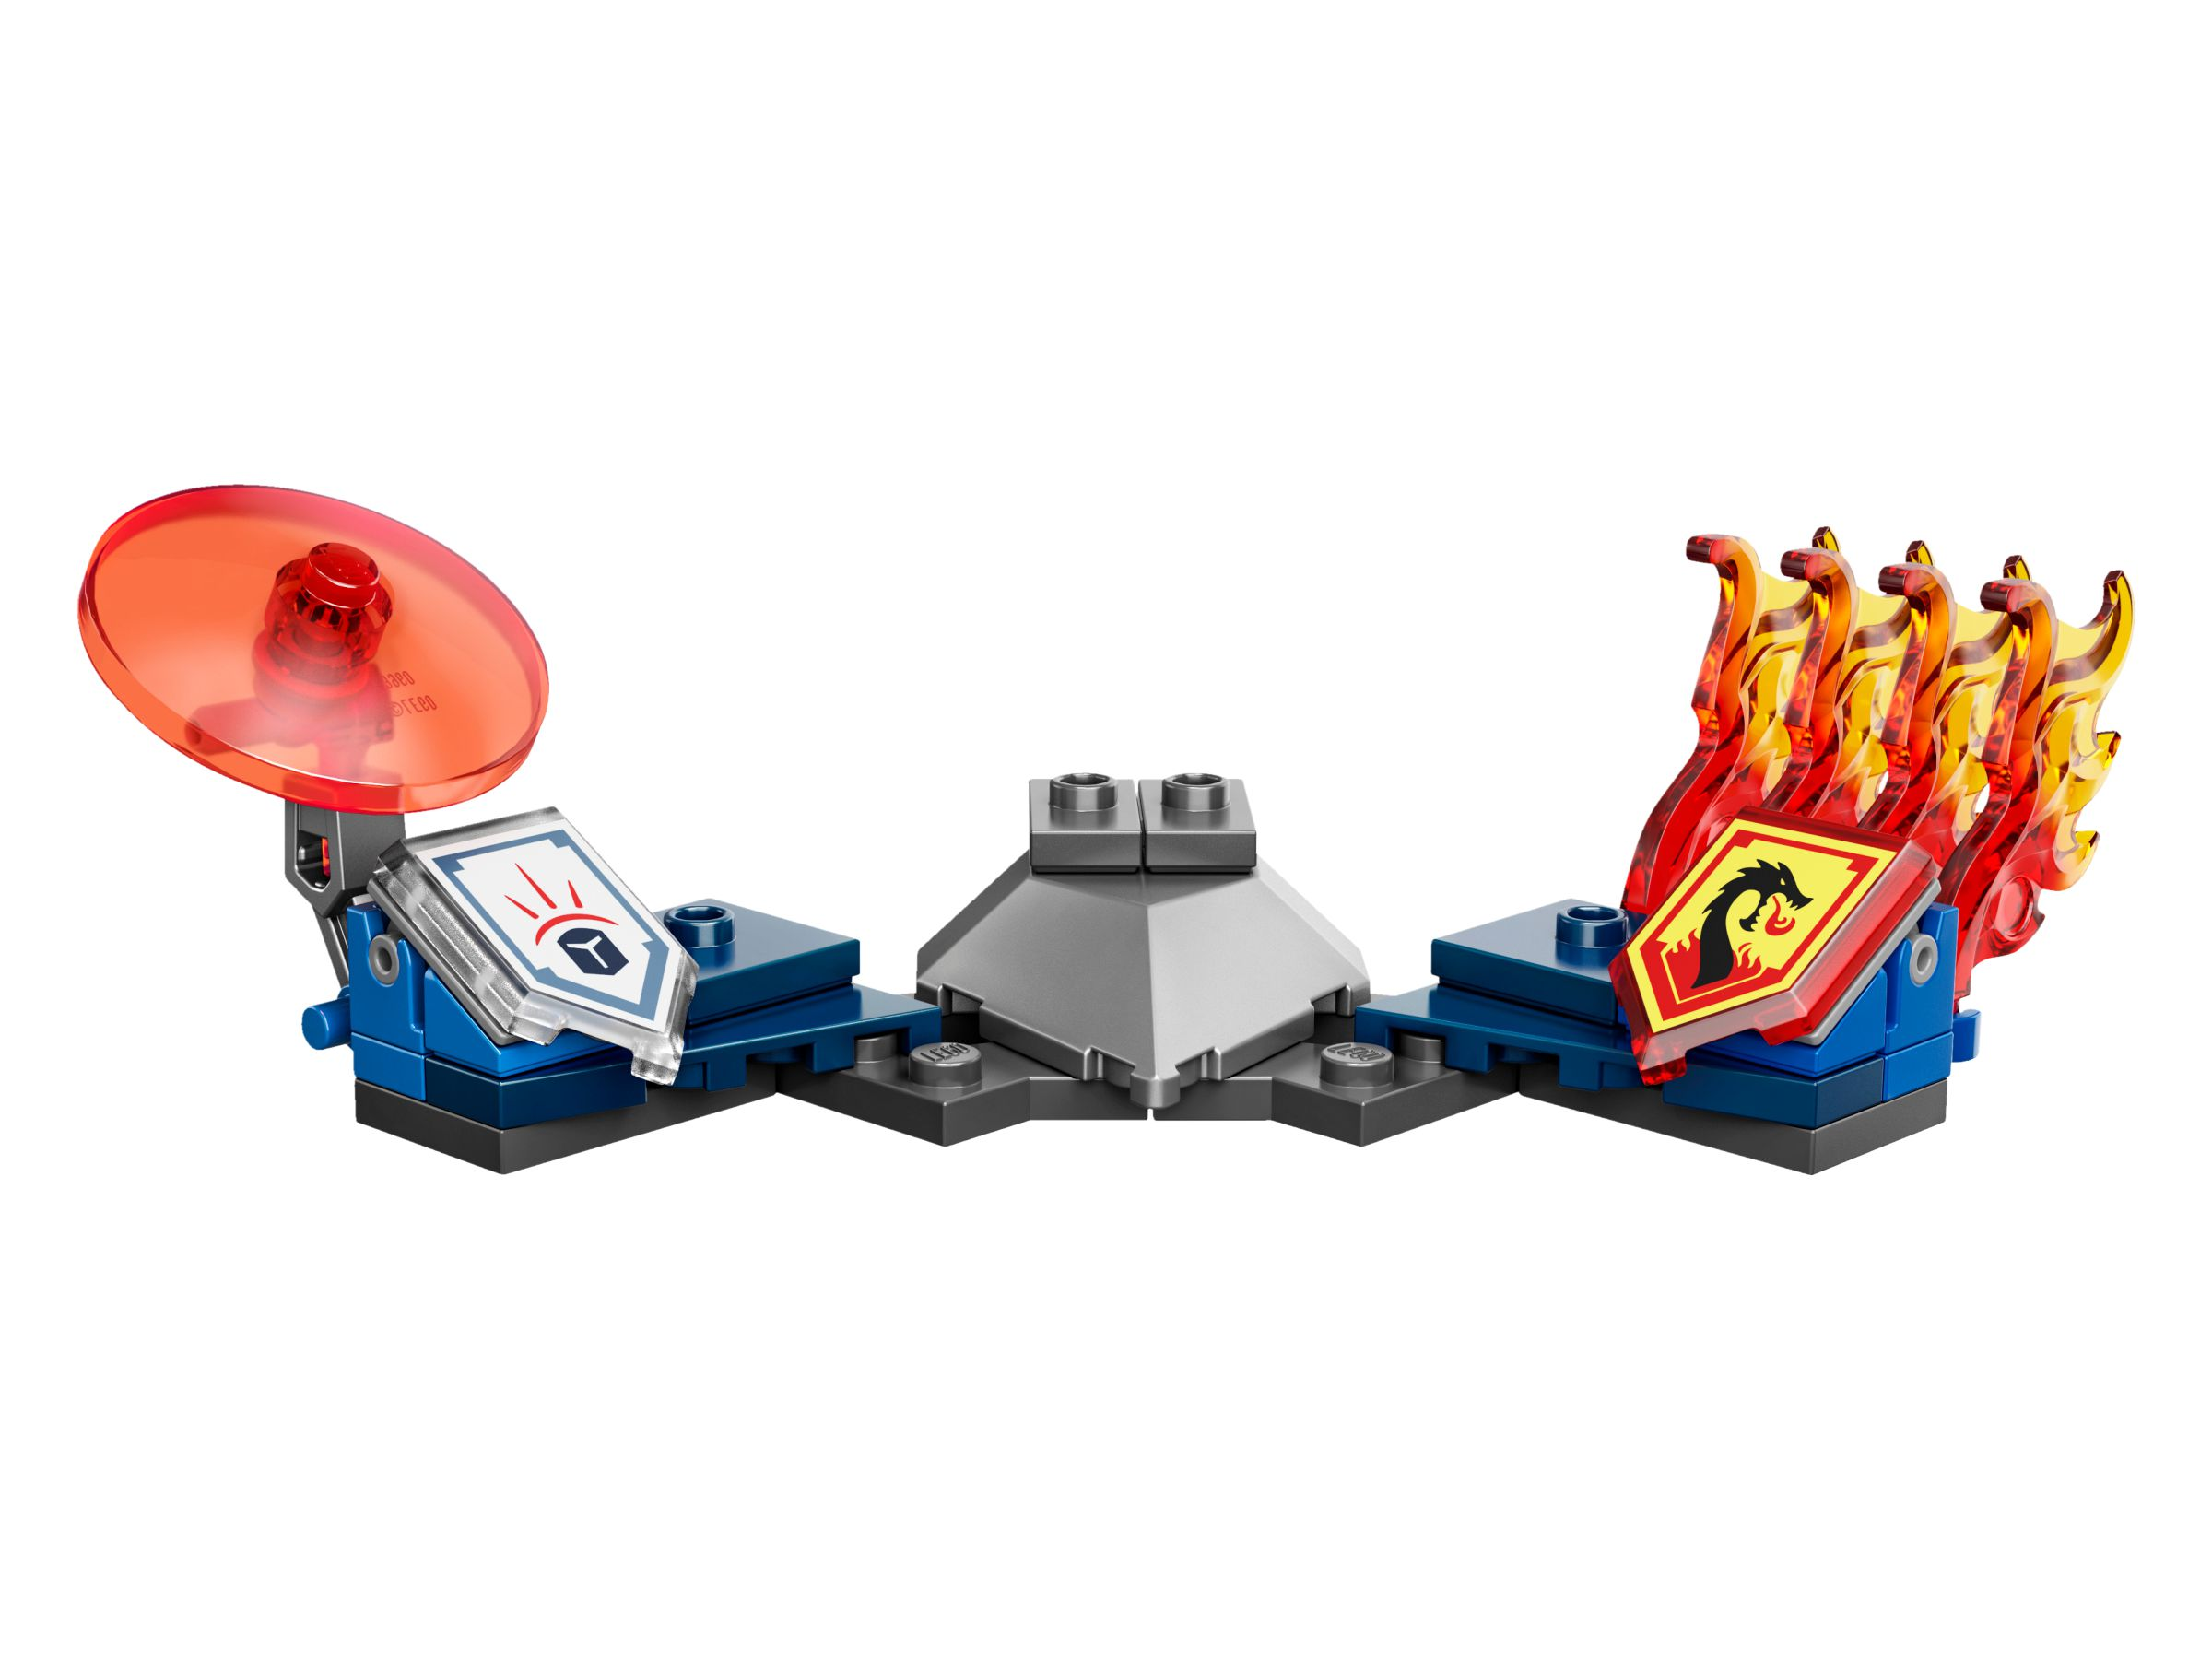 LEGO Nexo Knights 70330 Ultimativer Clay LEGO_70330_alt3.jpg